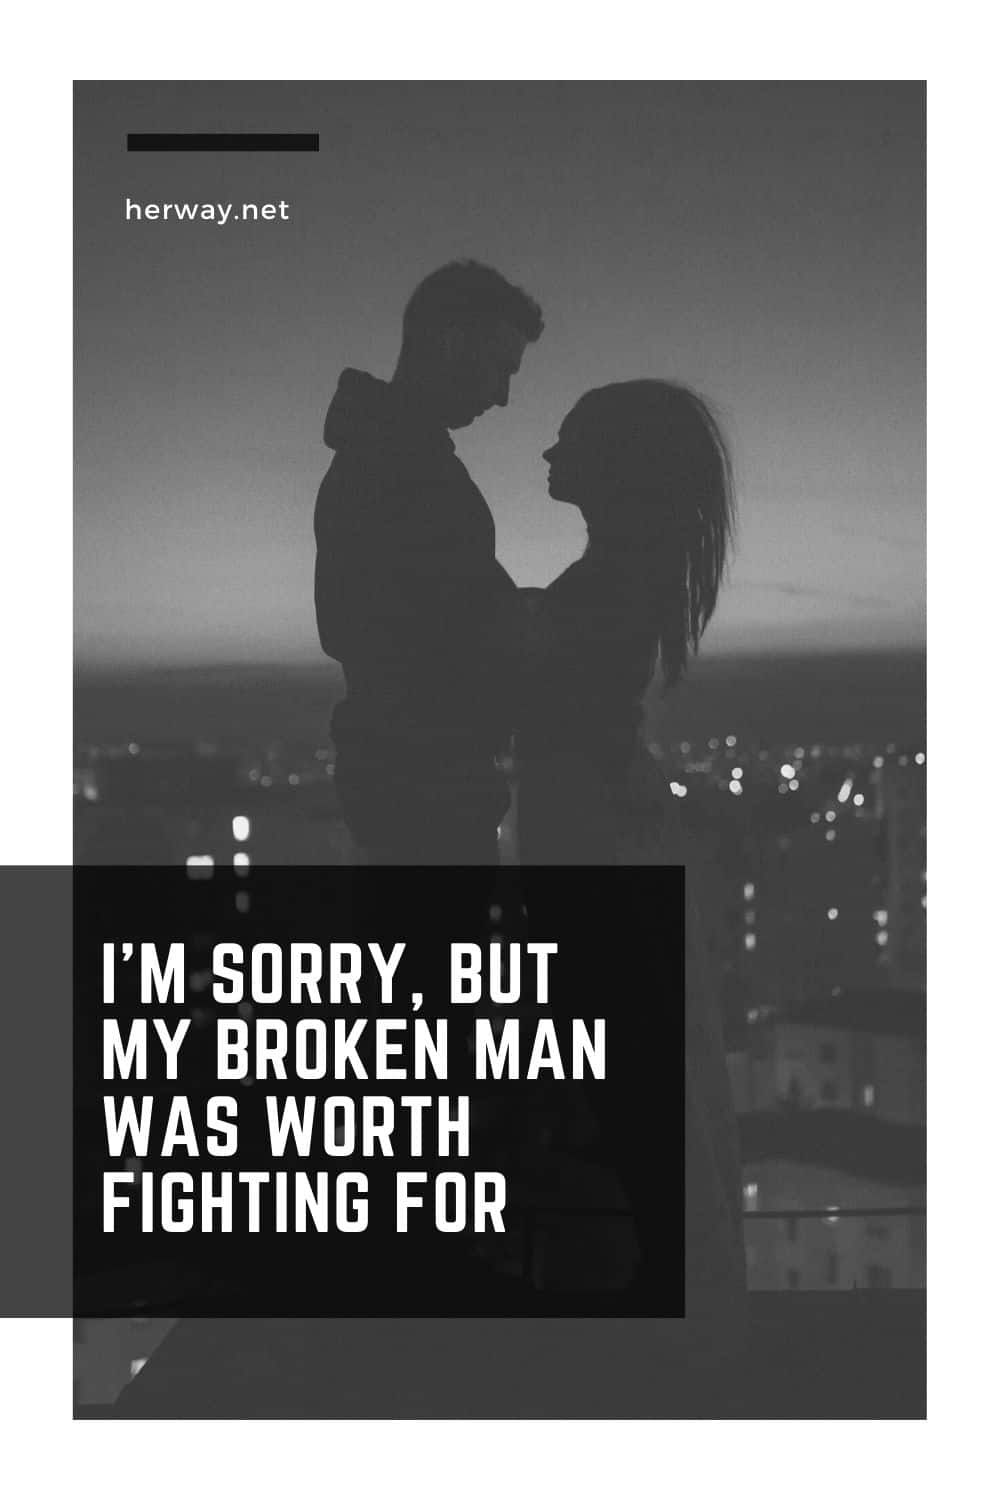 I'M SORRY, BUT MY BROKEN MAN WAS WORTH FIGHTING FOR